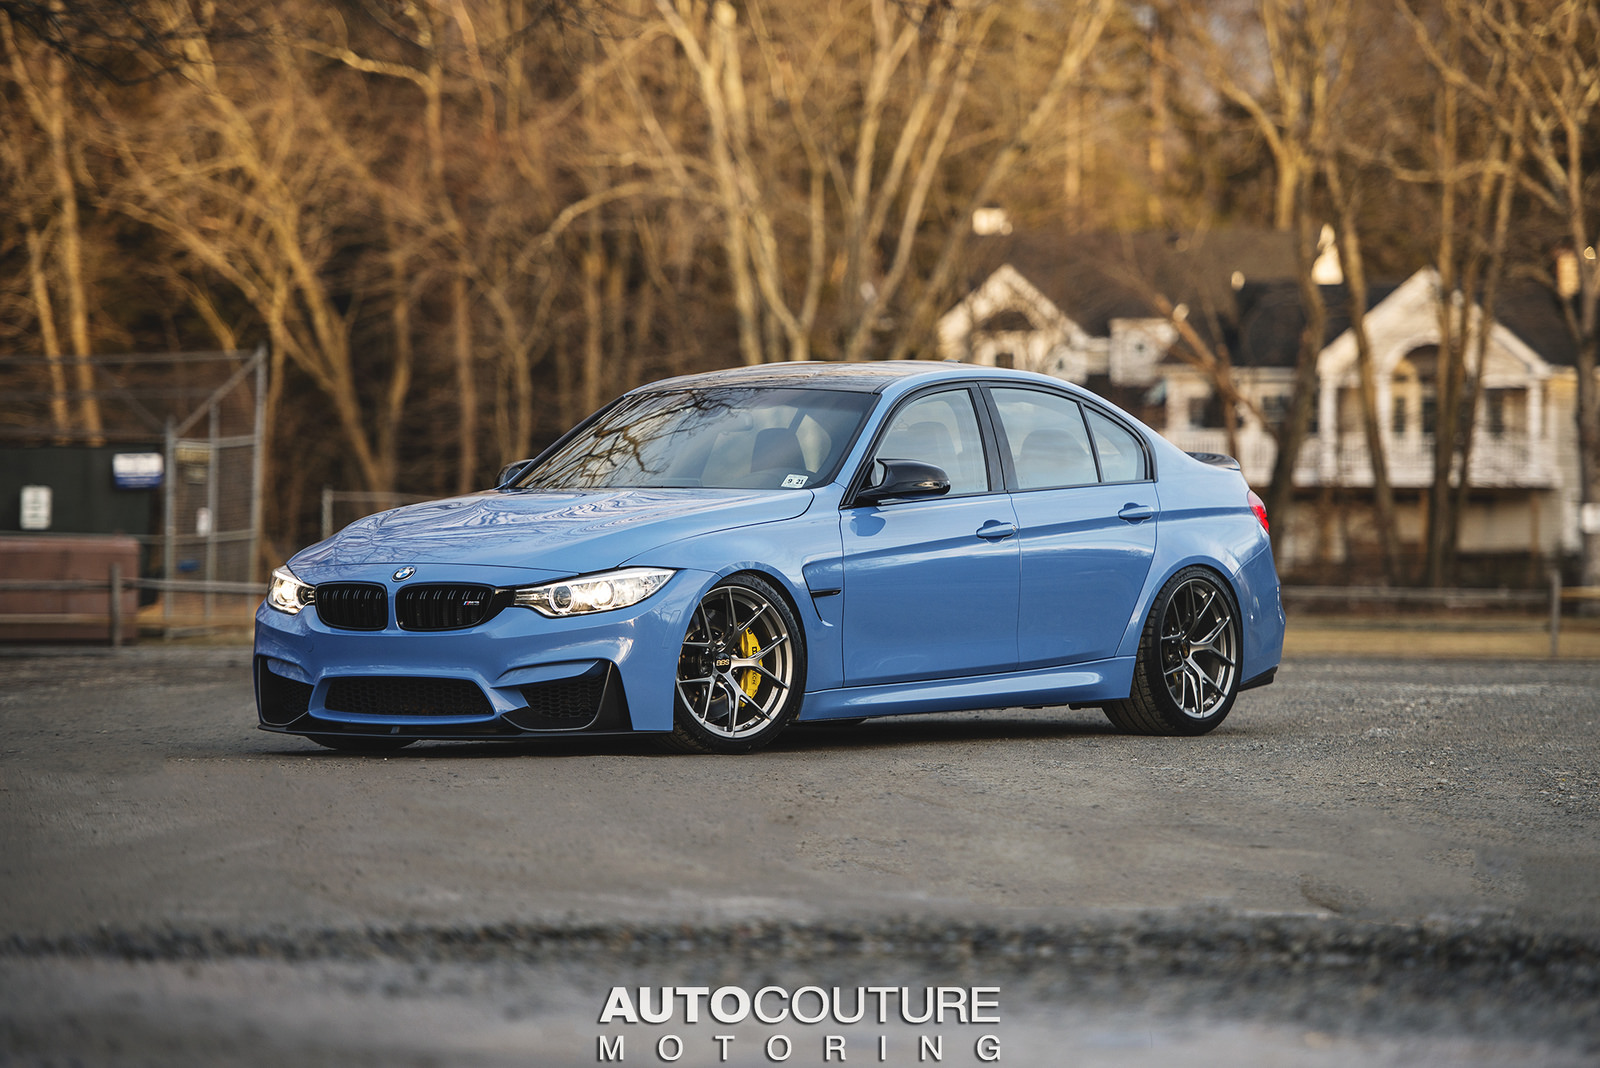 Yas Marina BMW M3 by AUTOCouture Motoring (11)